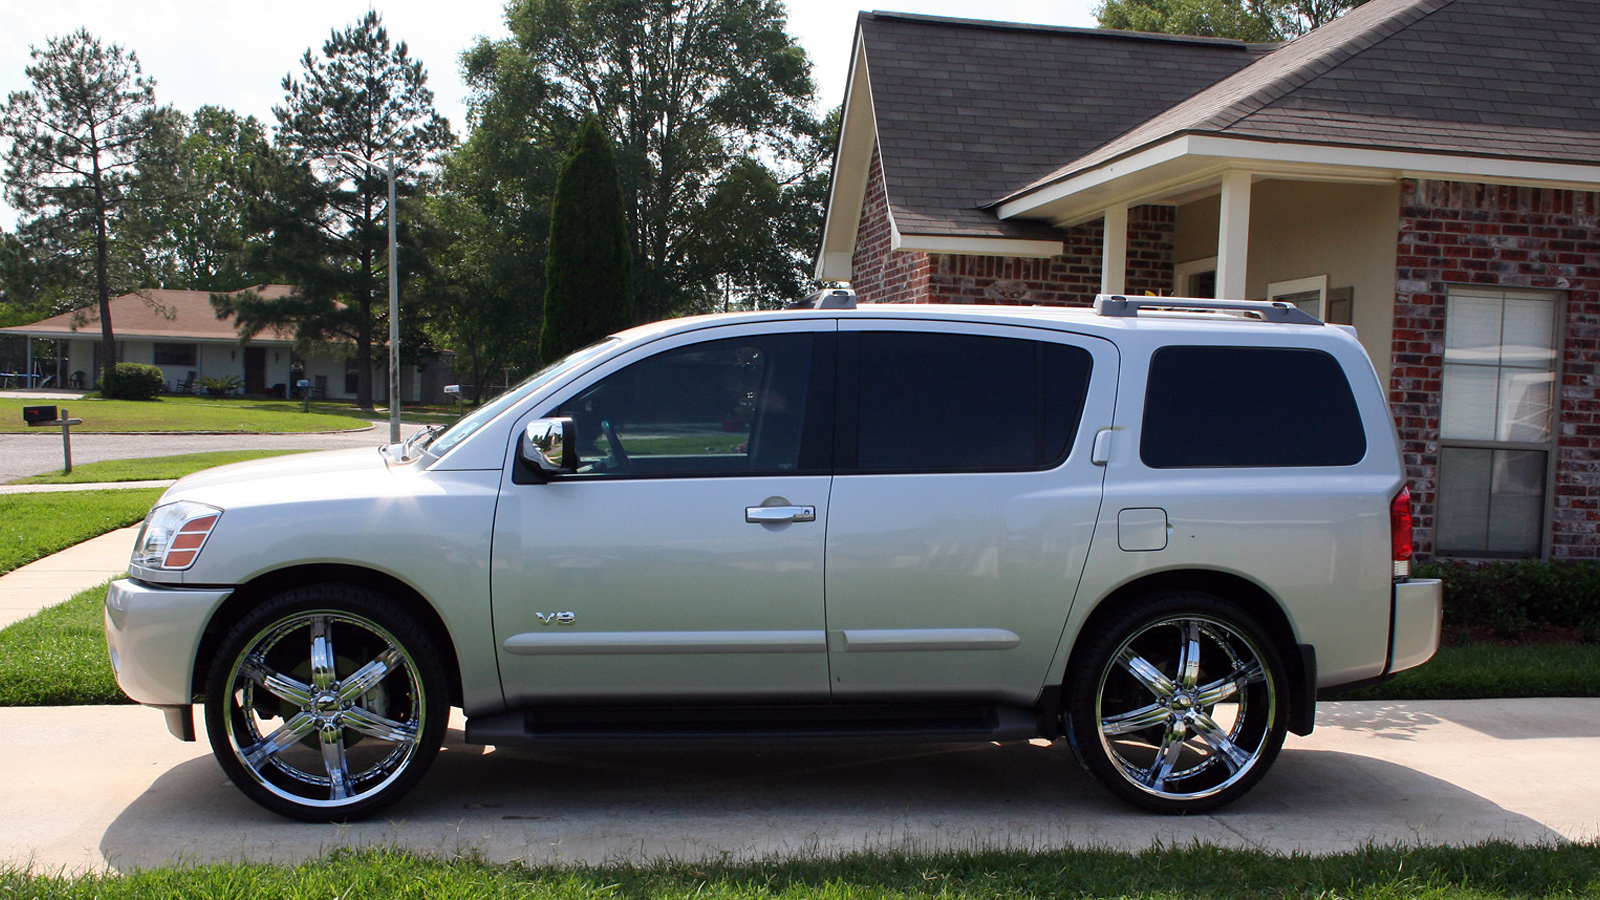 nissan armada images #2